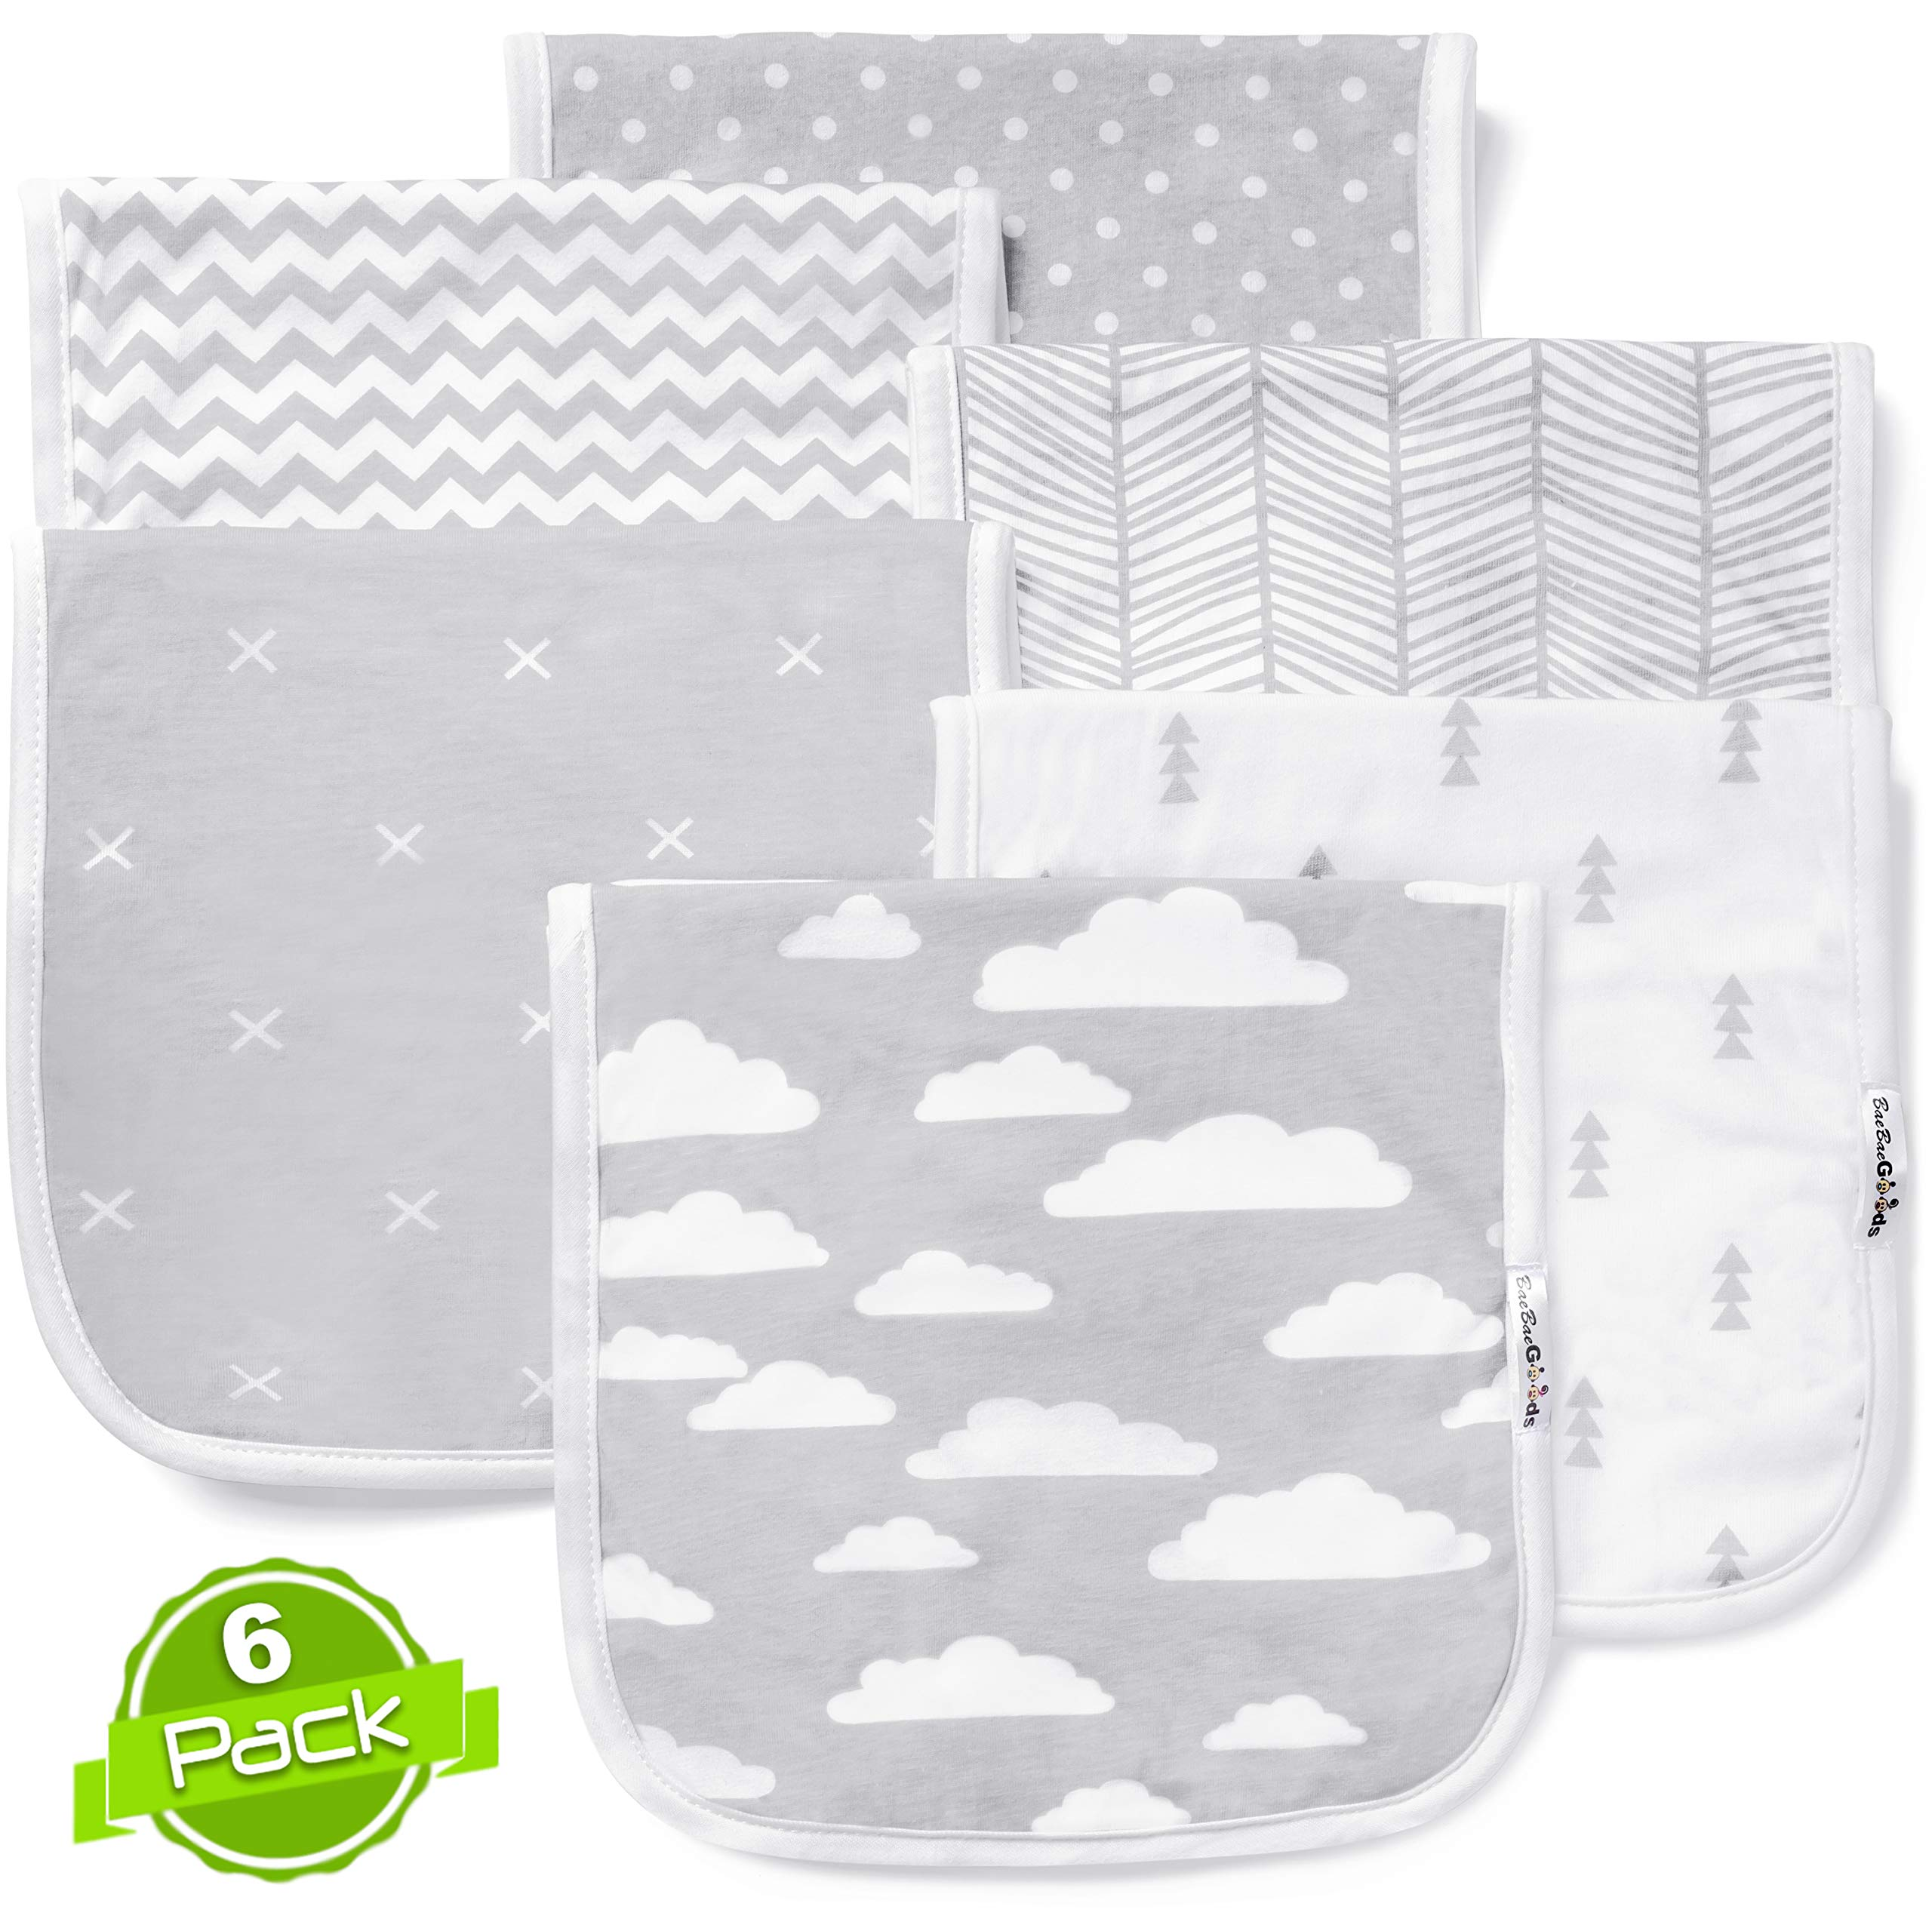 Baby Burp Cloths Set (6 Pack), Super Soft Cotton, Large 21''x10'', Thick, Soft and Absorbent Towels, Burping Rags for Newborns, Baby Shower Gift for Boys and Girls by BaeBae Goods ... ...